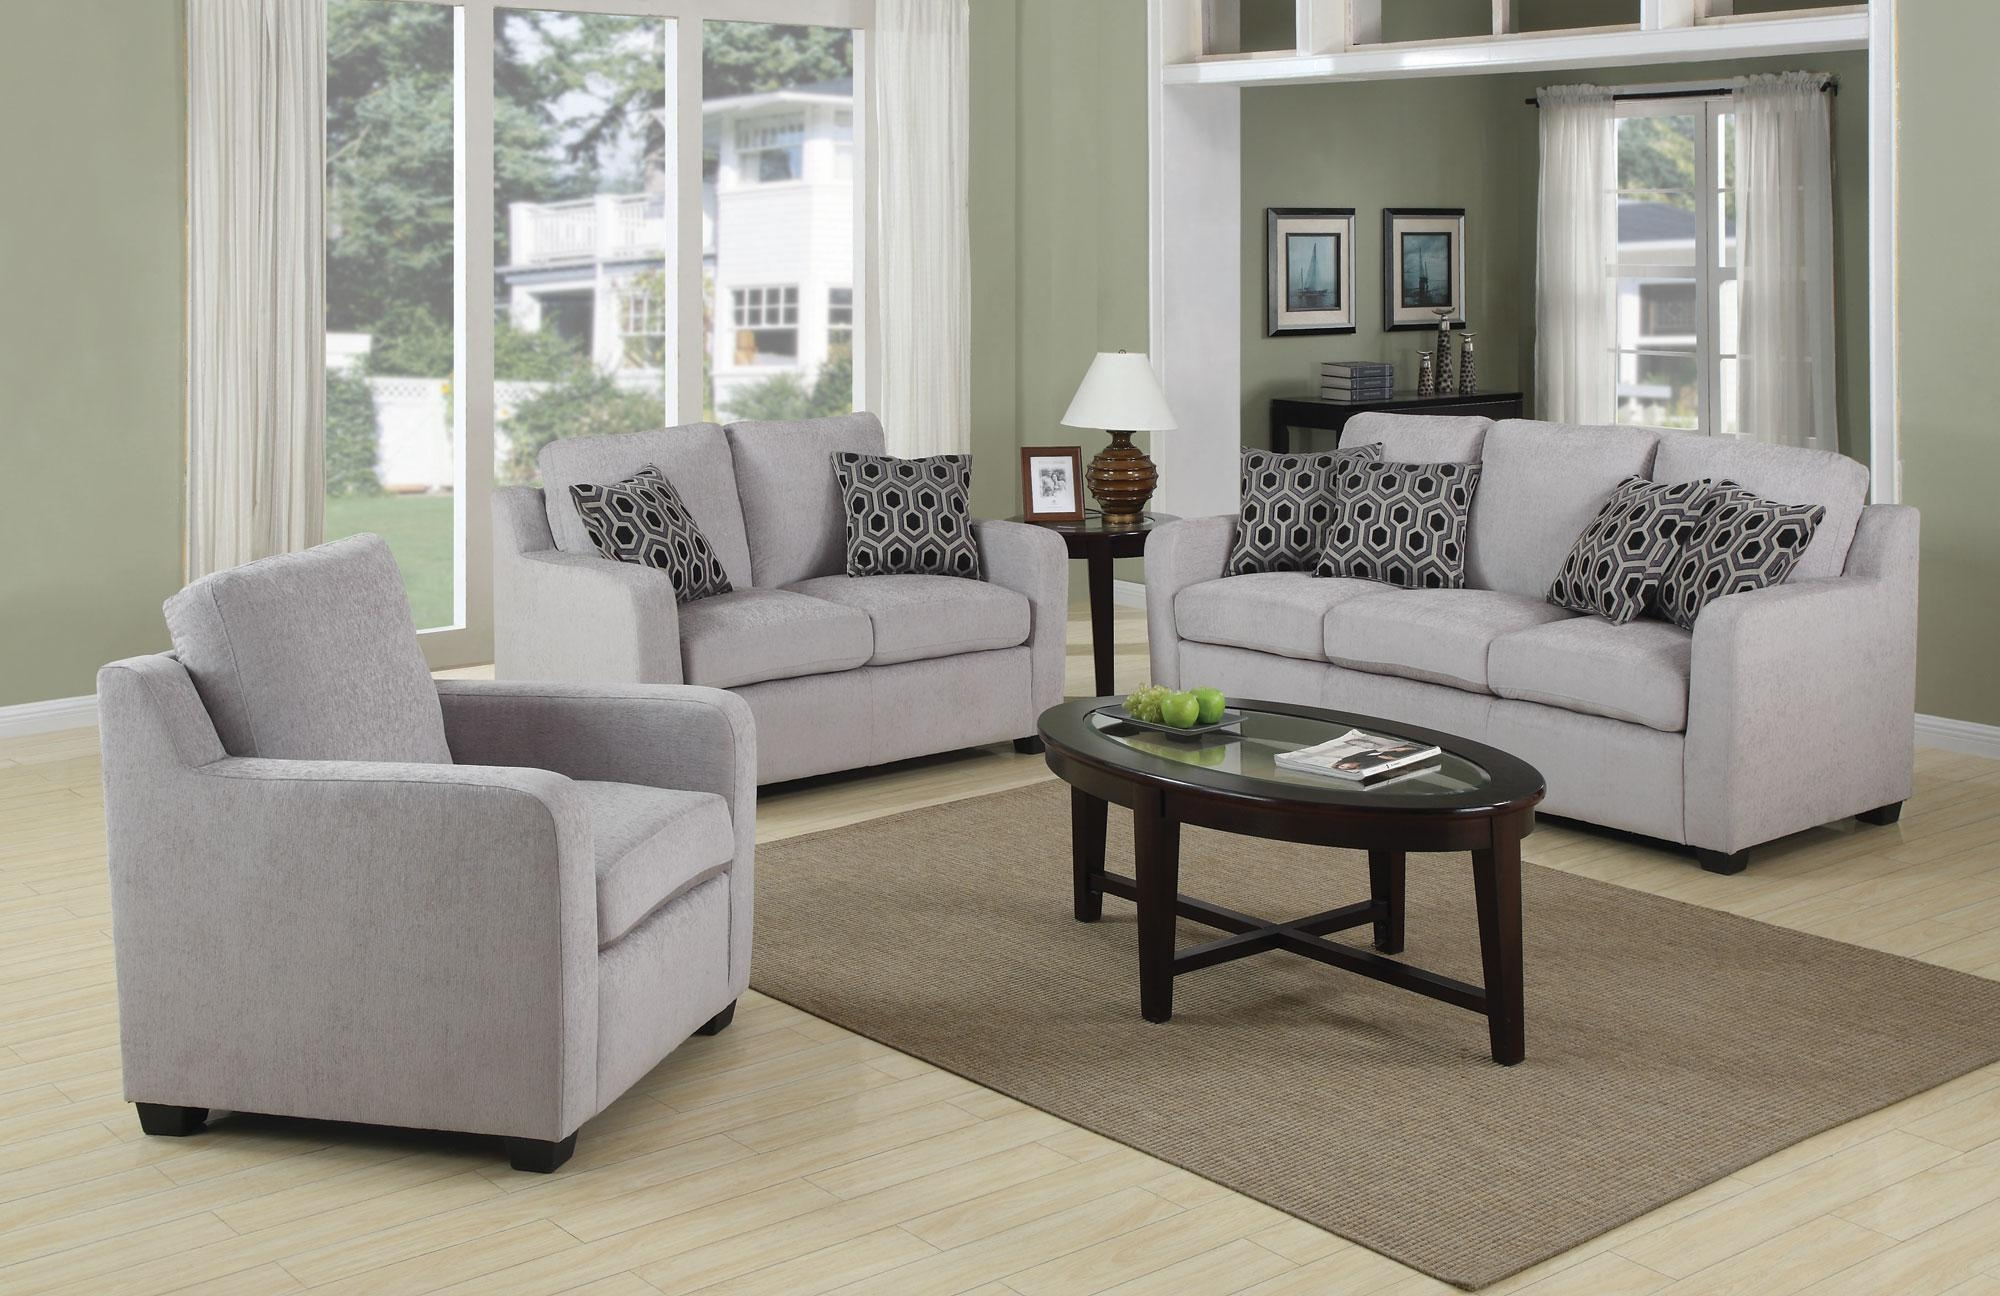 Cheap Living Room Sets Houston Sectional Sofas Under (View 6 of 20)